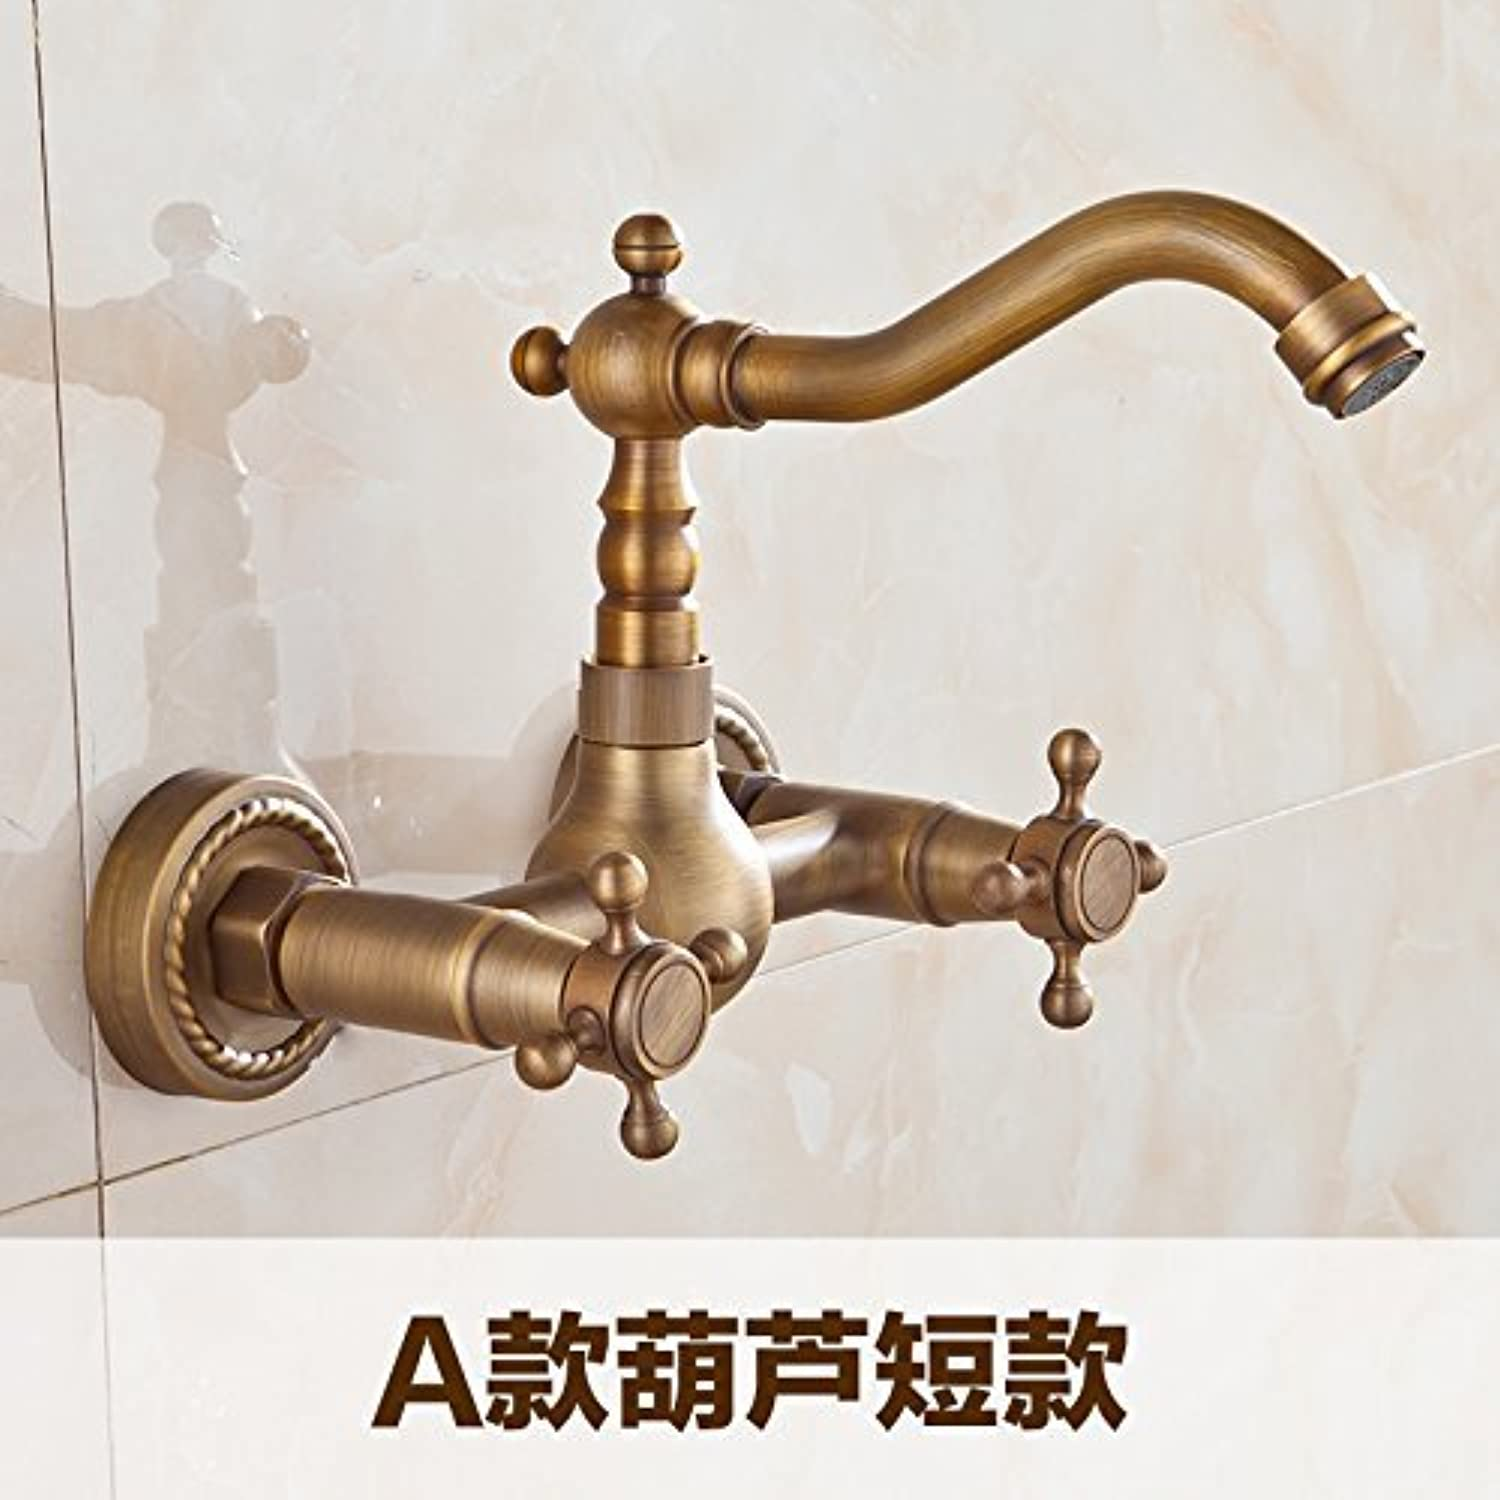 MONFS HOME Antique Sink Mixer Tap Bathroom Hot and Cold Wall Mounted redate Double